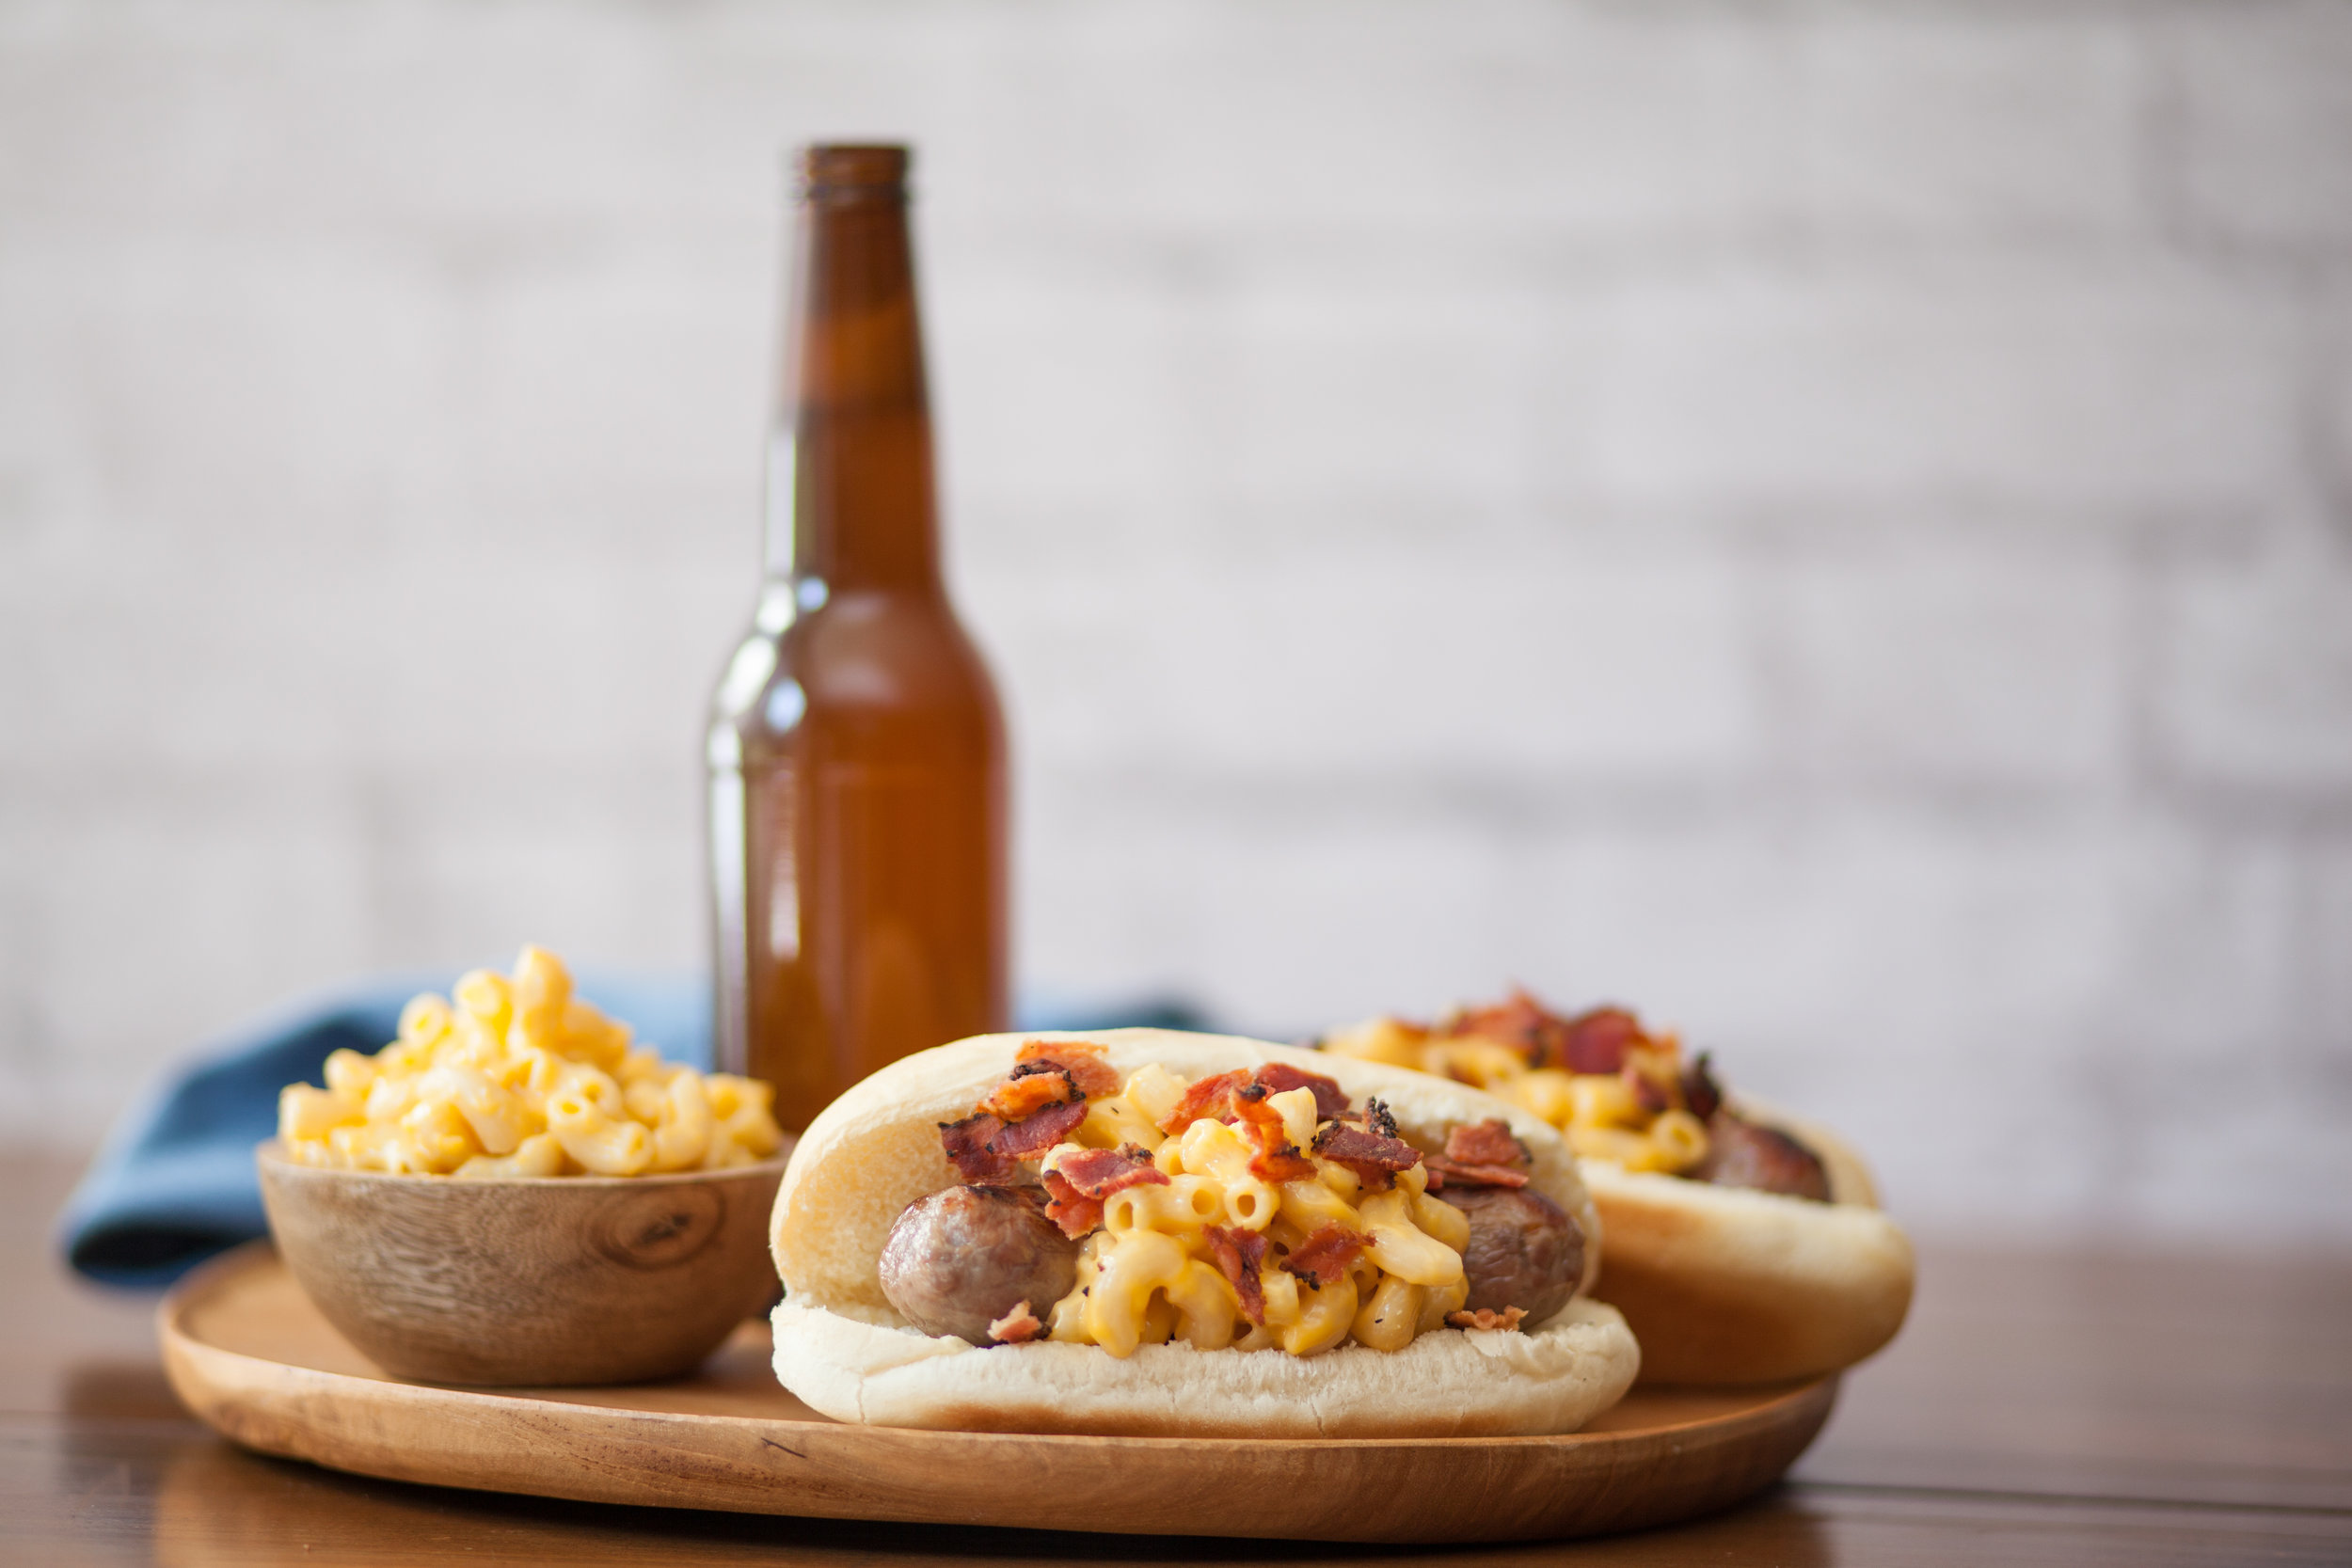 1. Bacon Mac 'N' Cheese Brats - The epitome of cheesy Midwest comfort foods, mac 'n cheese, meets a tailgating staple. To recreate this savory snack, all you have to do is pile your favorite mac 'n cheese recipe onto a Johnsonville Brat and Stadium Bun.